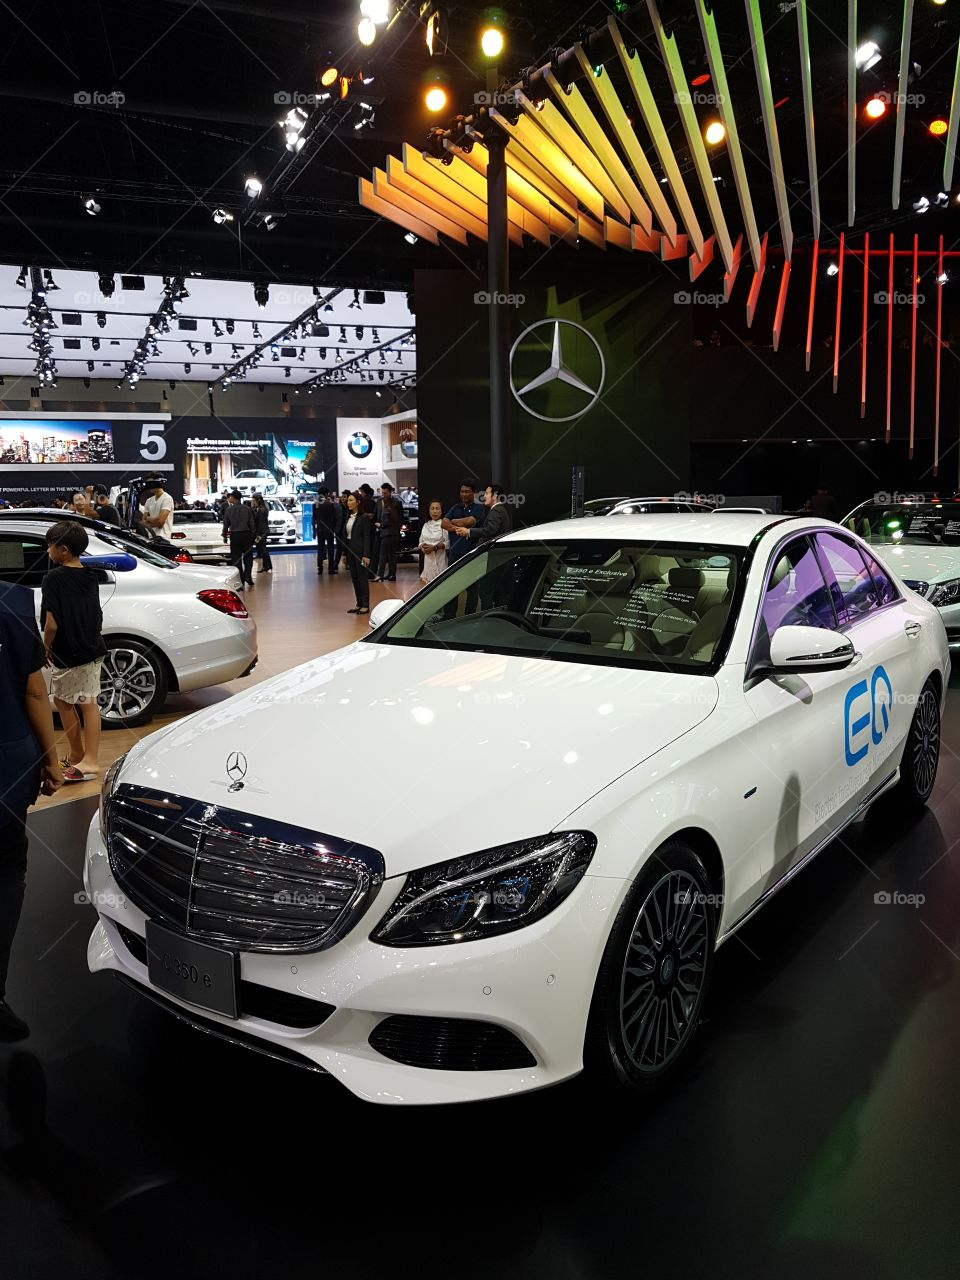 Mercedes C 350 e exclusive benz display at Bangkok international motorshow